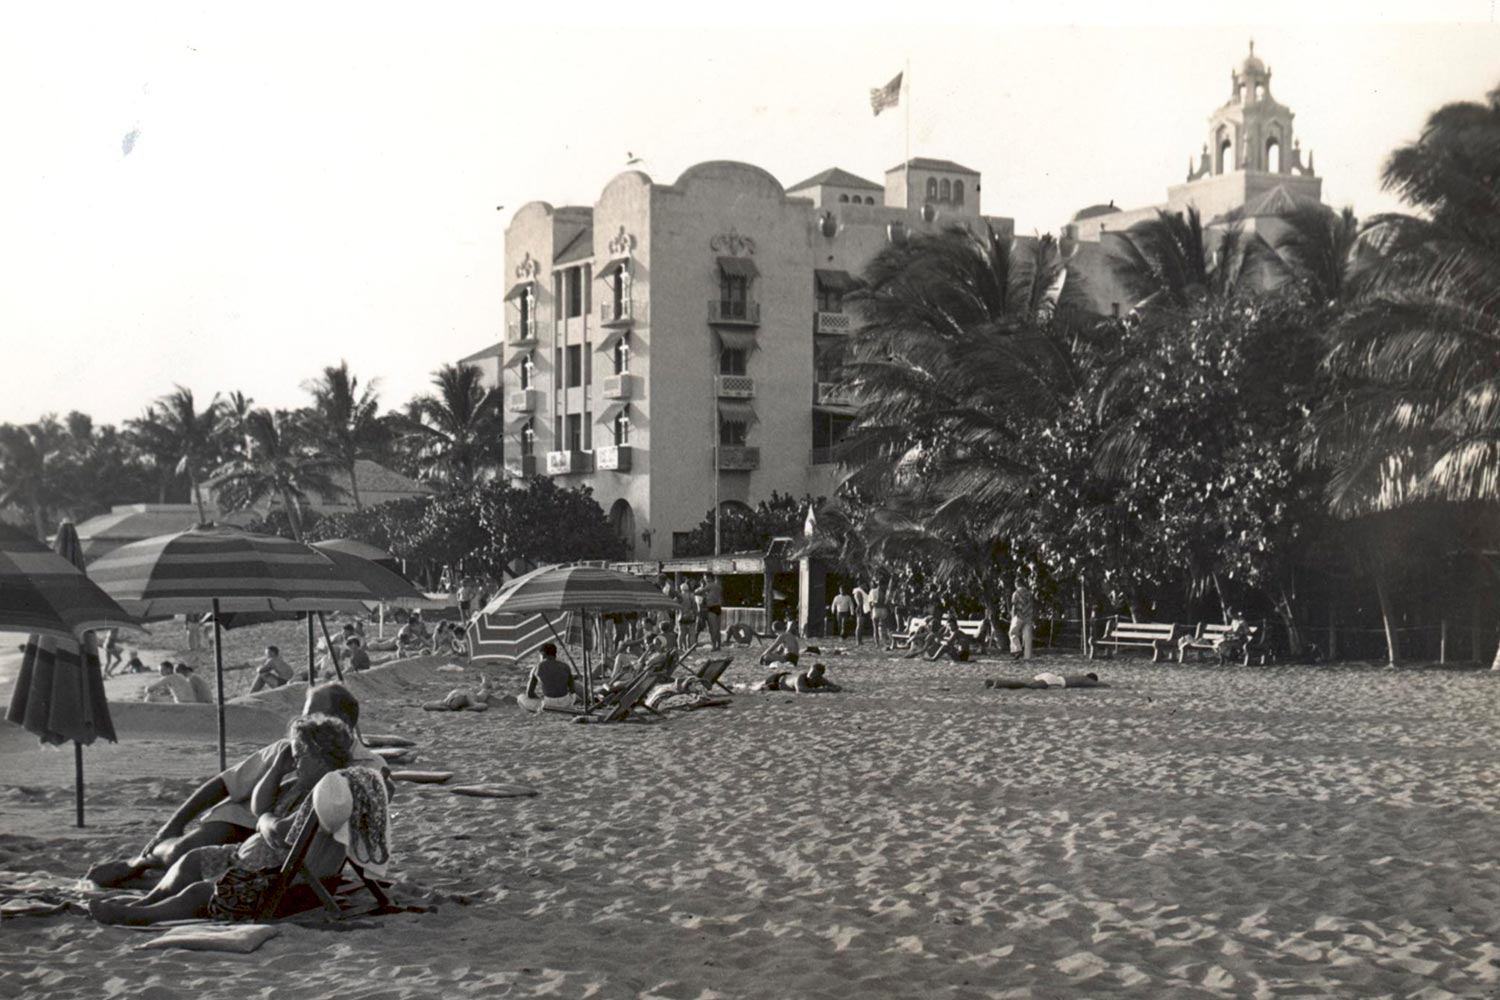 swh-31200-royal-hawaiian-hotel-photo-gallery-hotel-history-Med